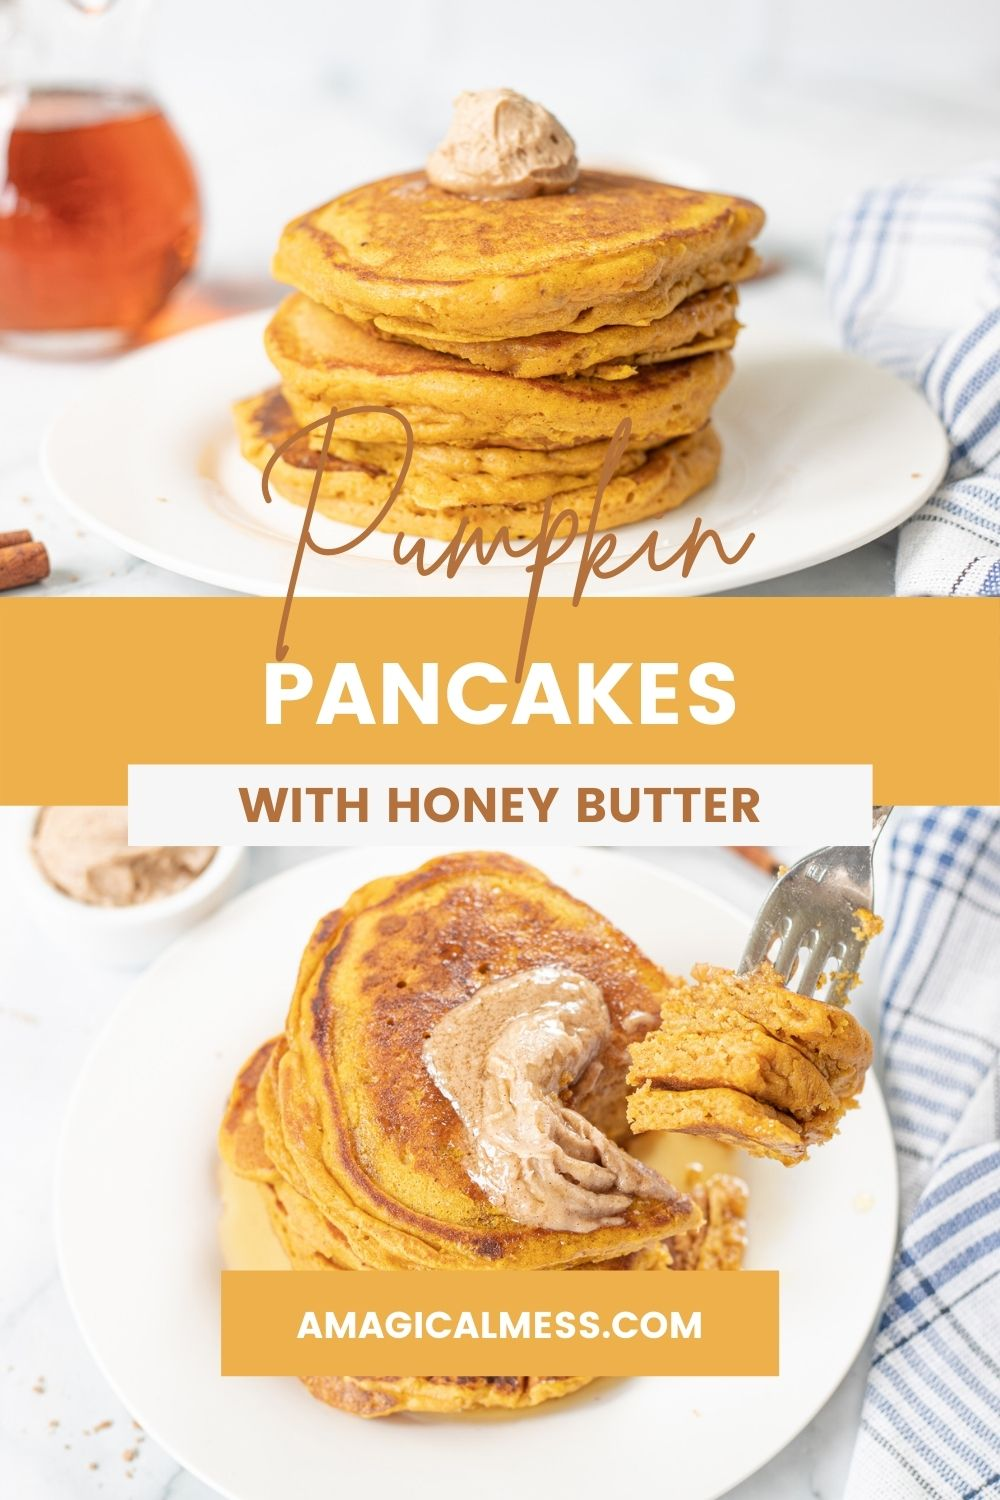 Stack of pumpkin pancakes and a fork full of pancakes.